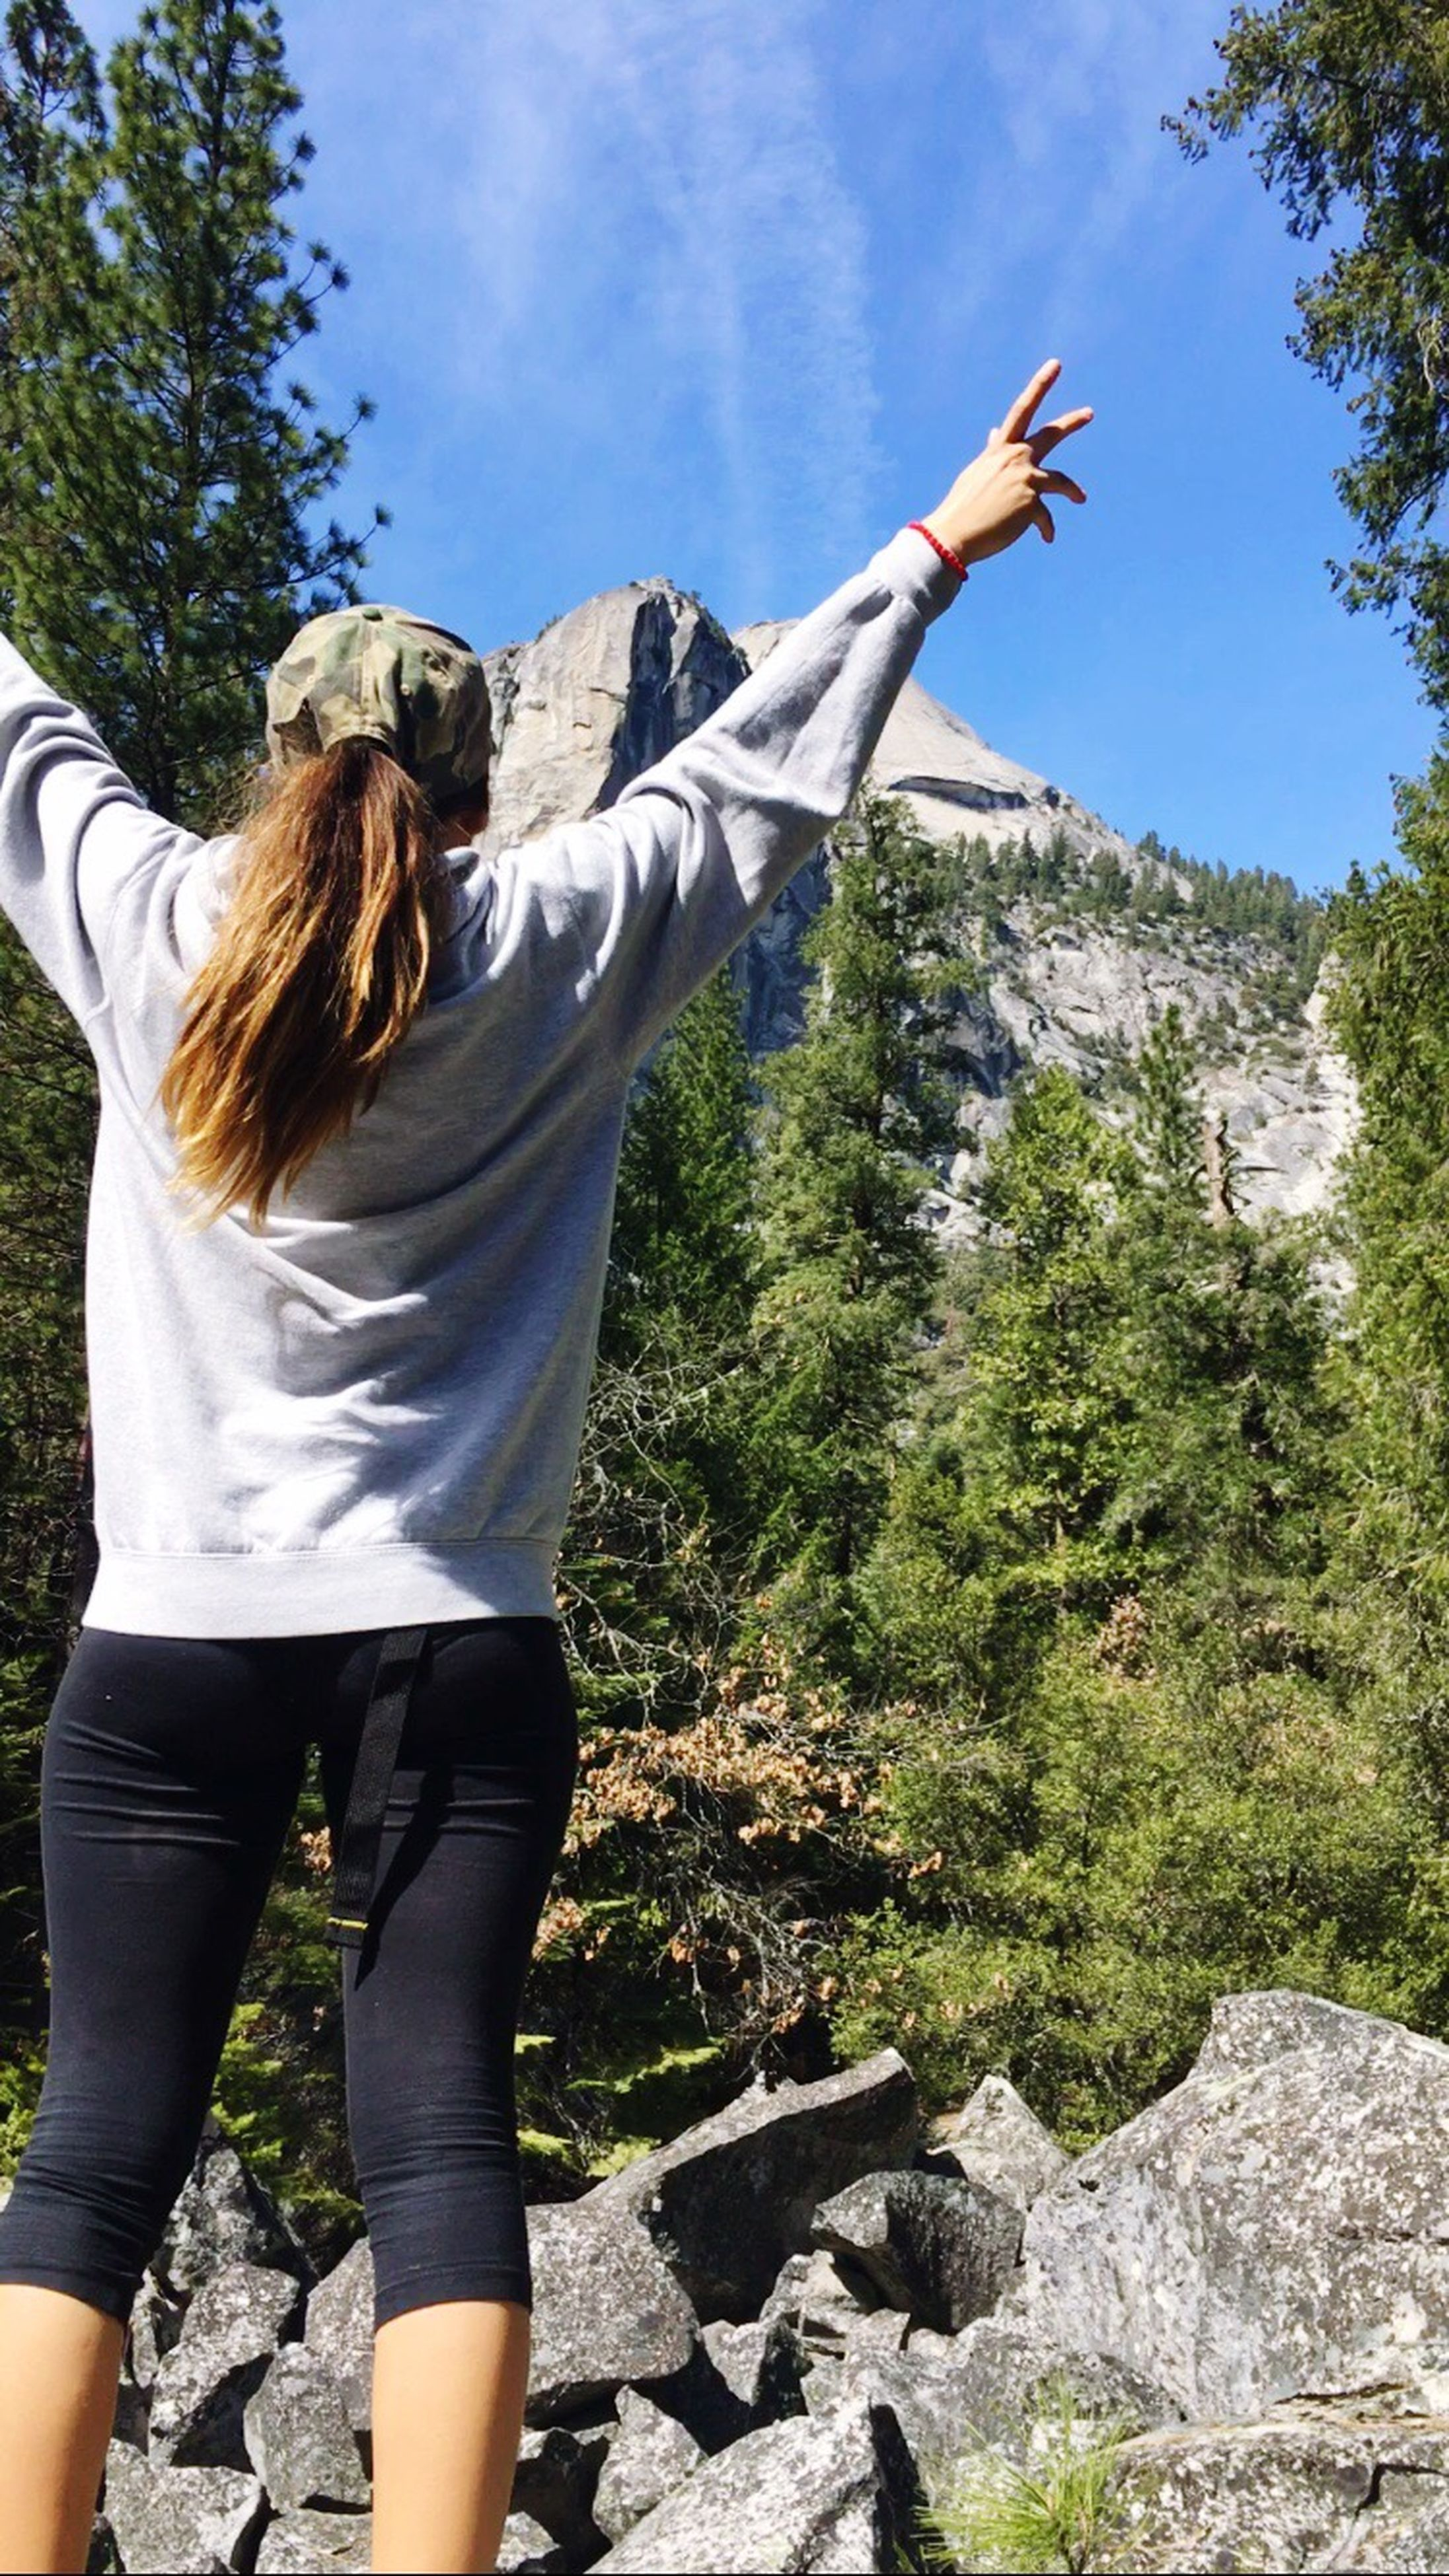 lifestyles, tree, casual clothing, leisure activity, standing, young adult, rear view, full length, sky, person, mountain, nature, men, day, rock - object, young women, low angle view, sunlight